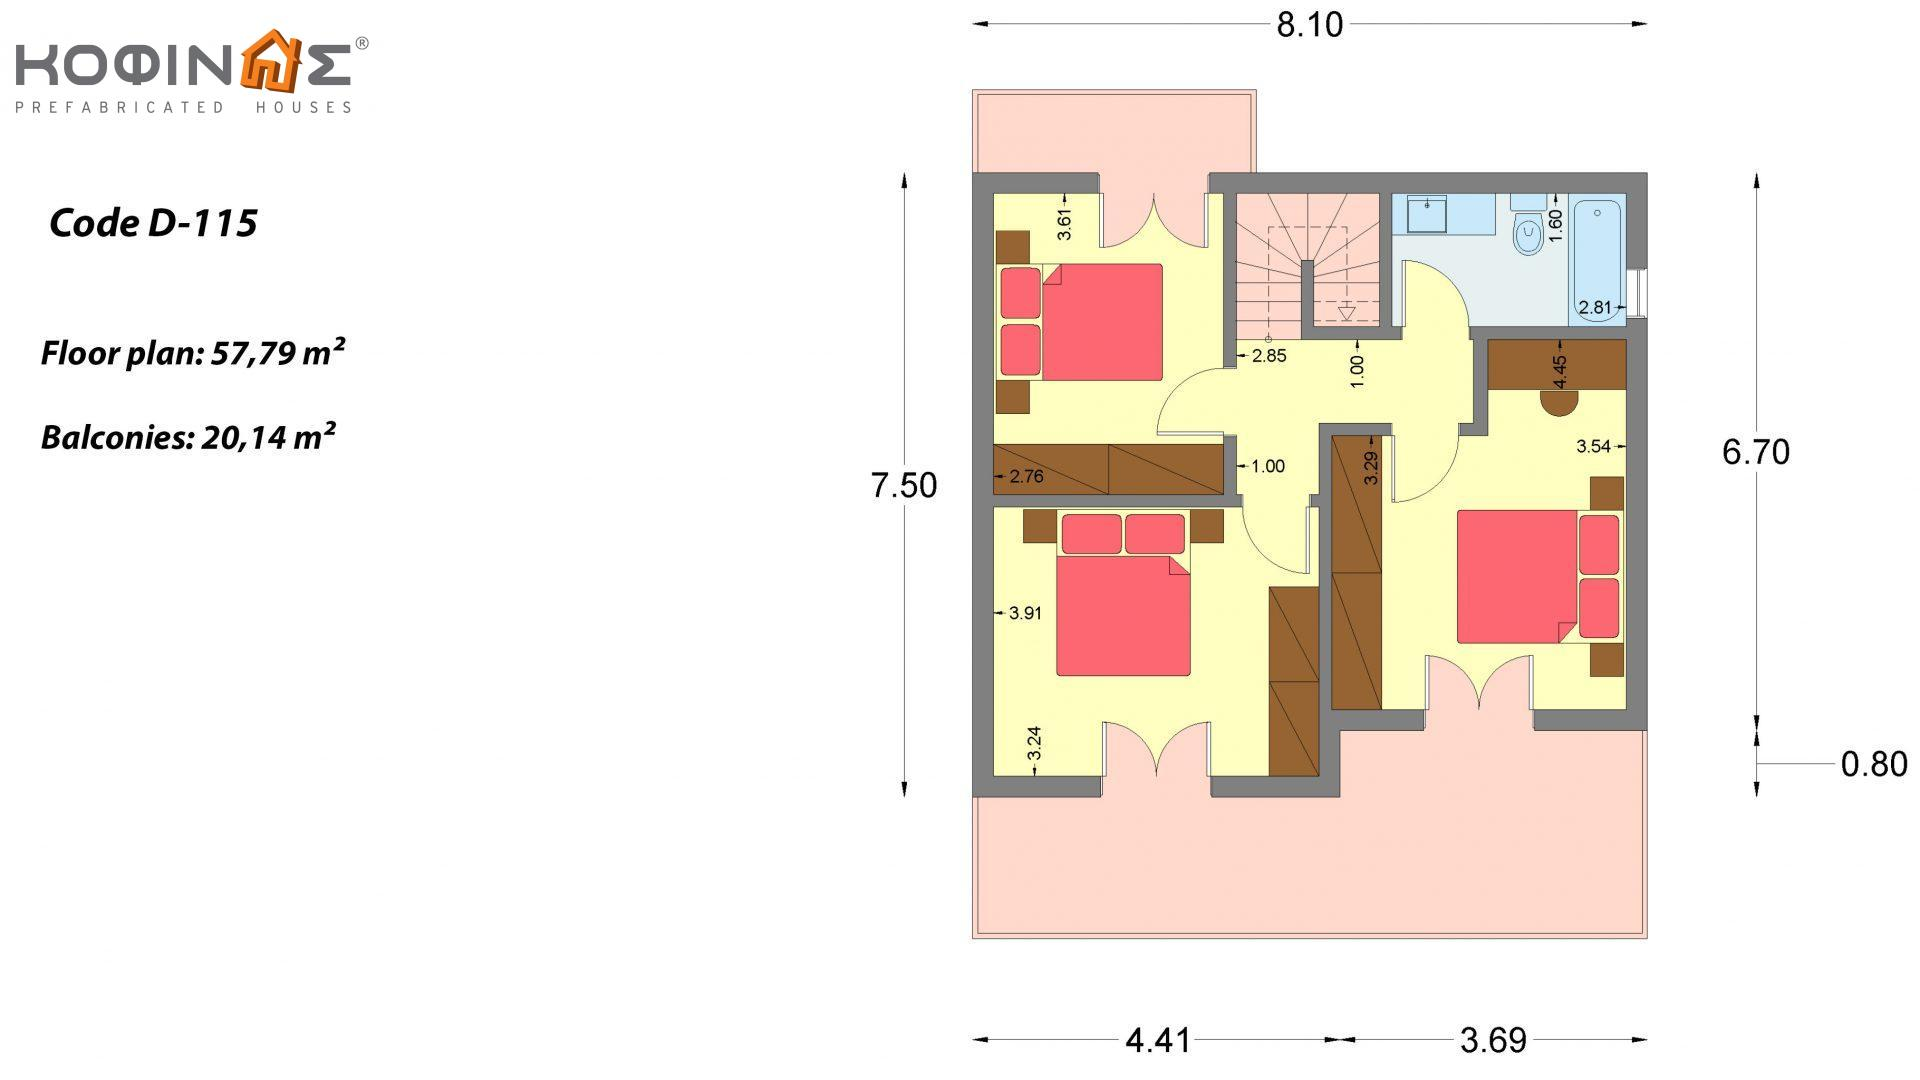 2-story house D-115, total surface of 115,58 m²,roofed areas 24,33 m²,balconies 20,14 m²